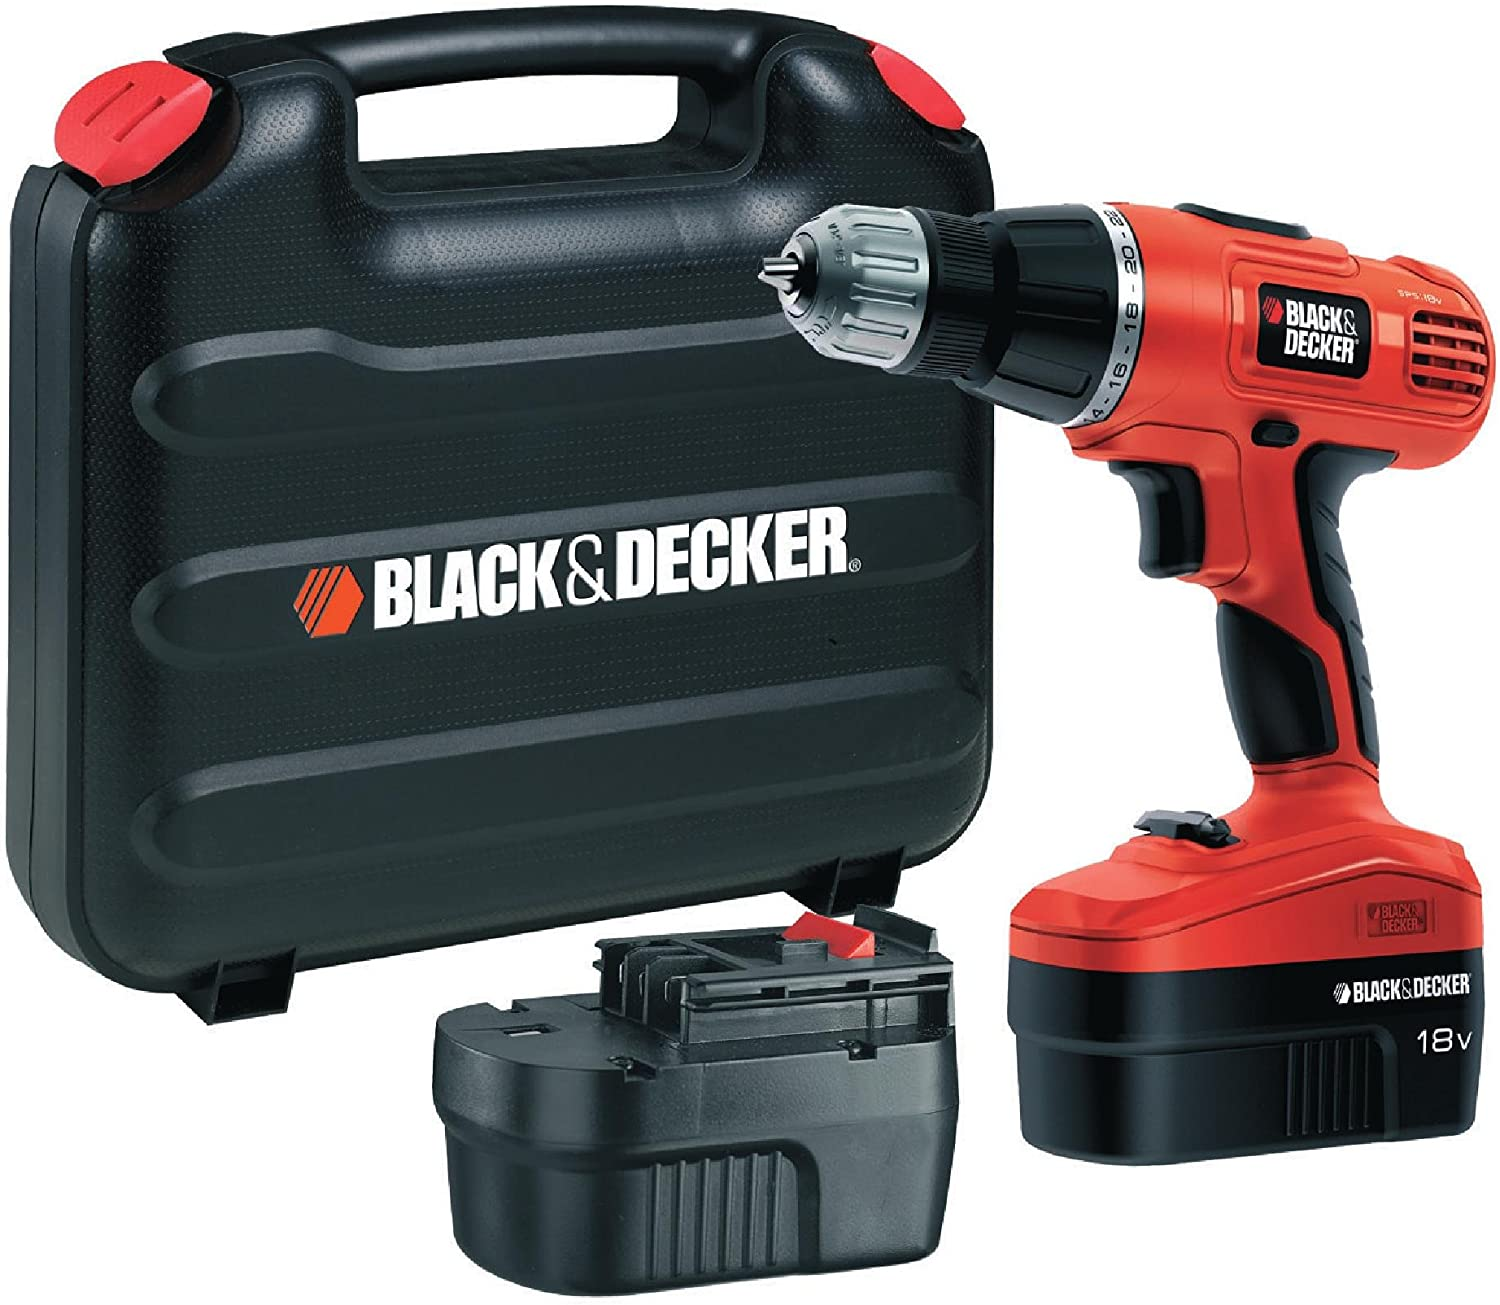 BLACK+DECKER 20-Volt MAX Lithium-Ion 3/8 in. Cordless ... |Cordless Power Tools Black And Decker